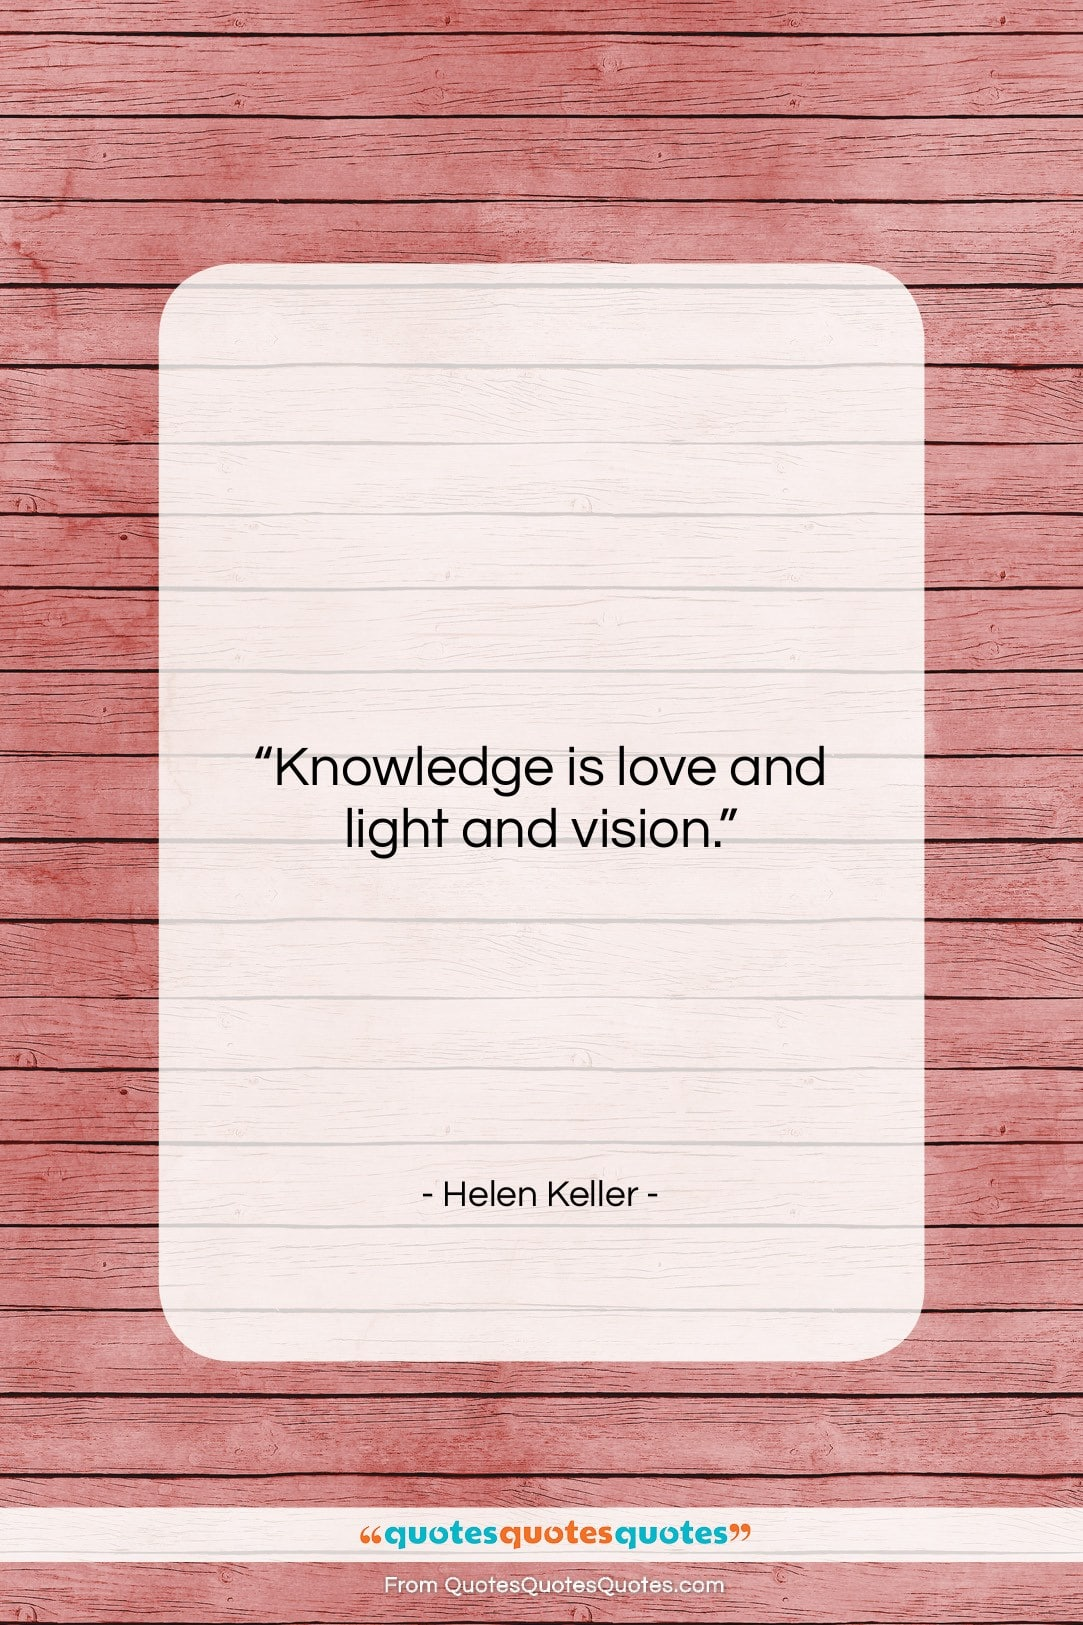 Get The Whole Helen Keller Quote Knowledge Is Love And Light And